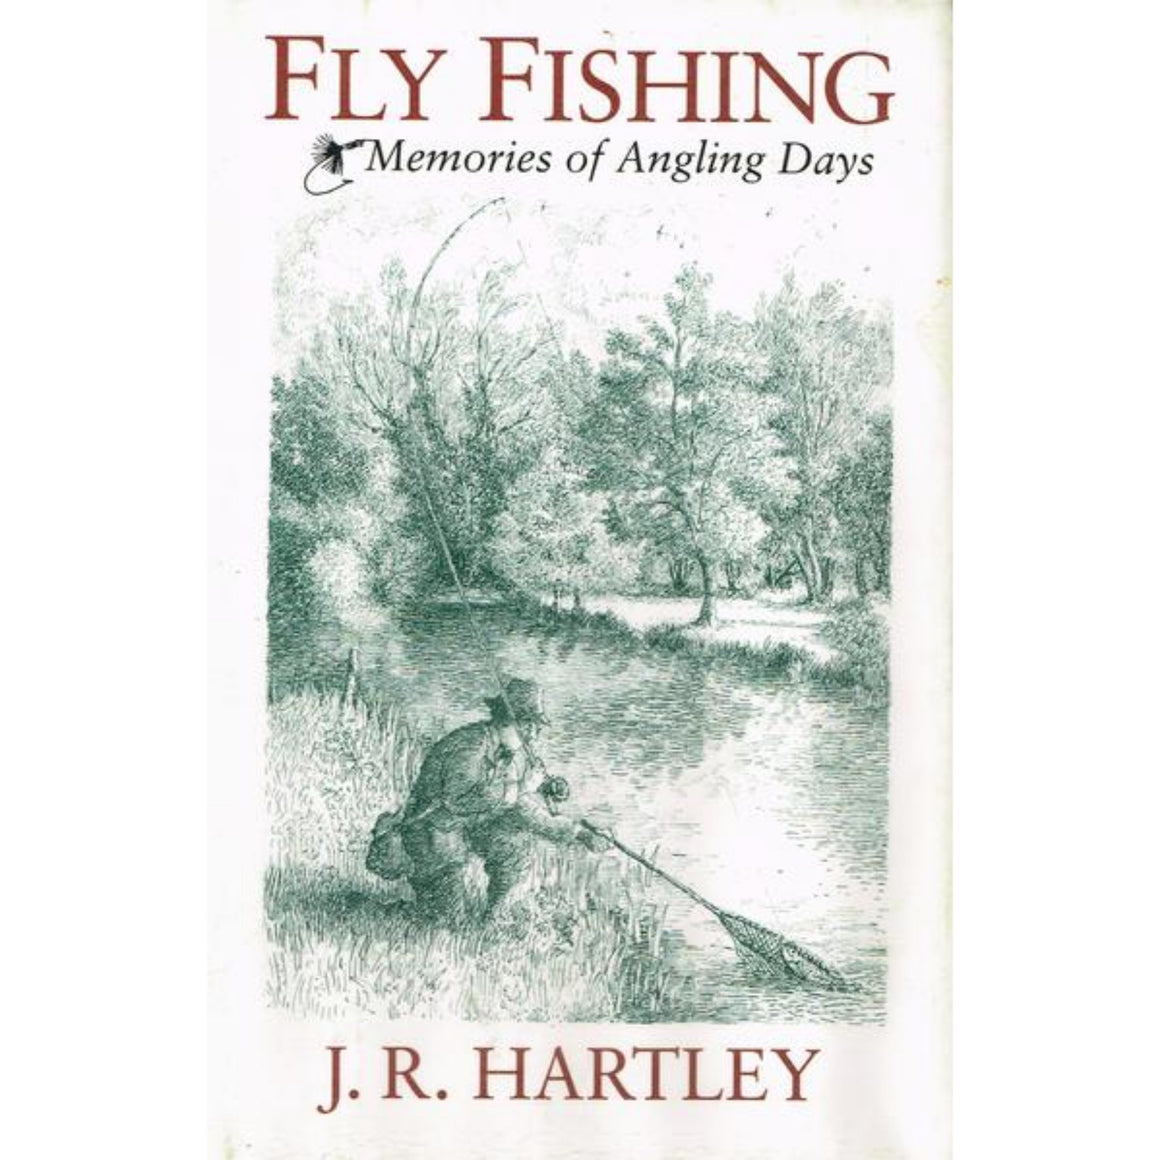 Fly-Fishing: Memories of Angling Days